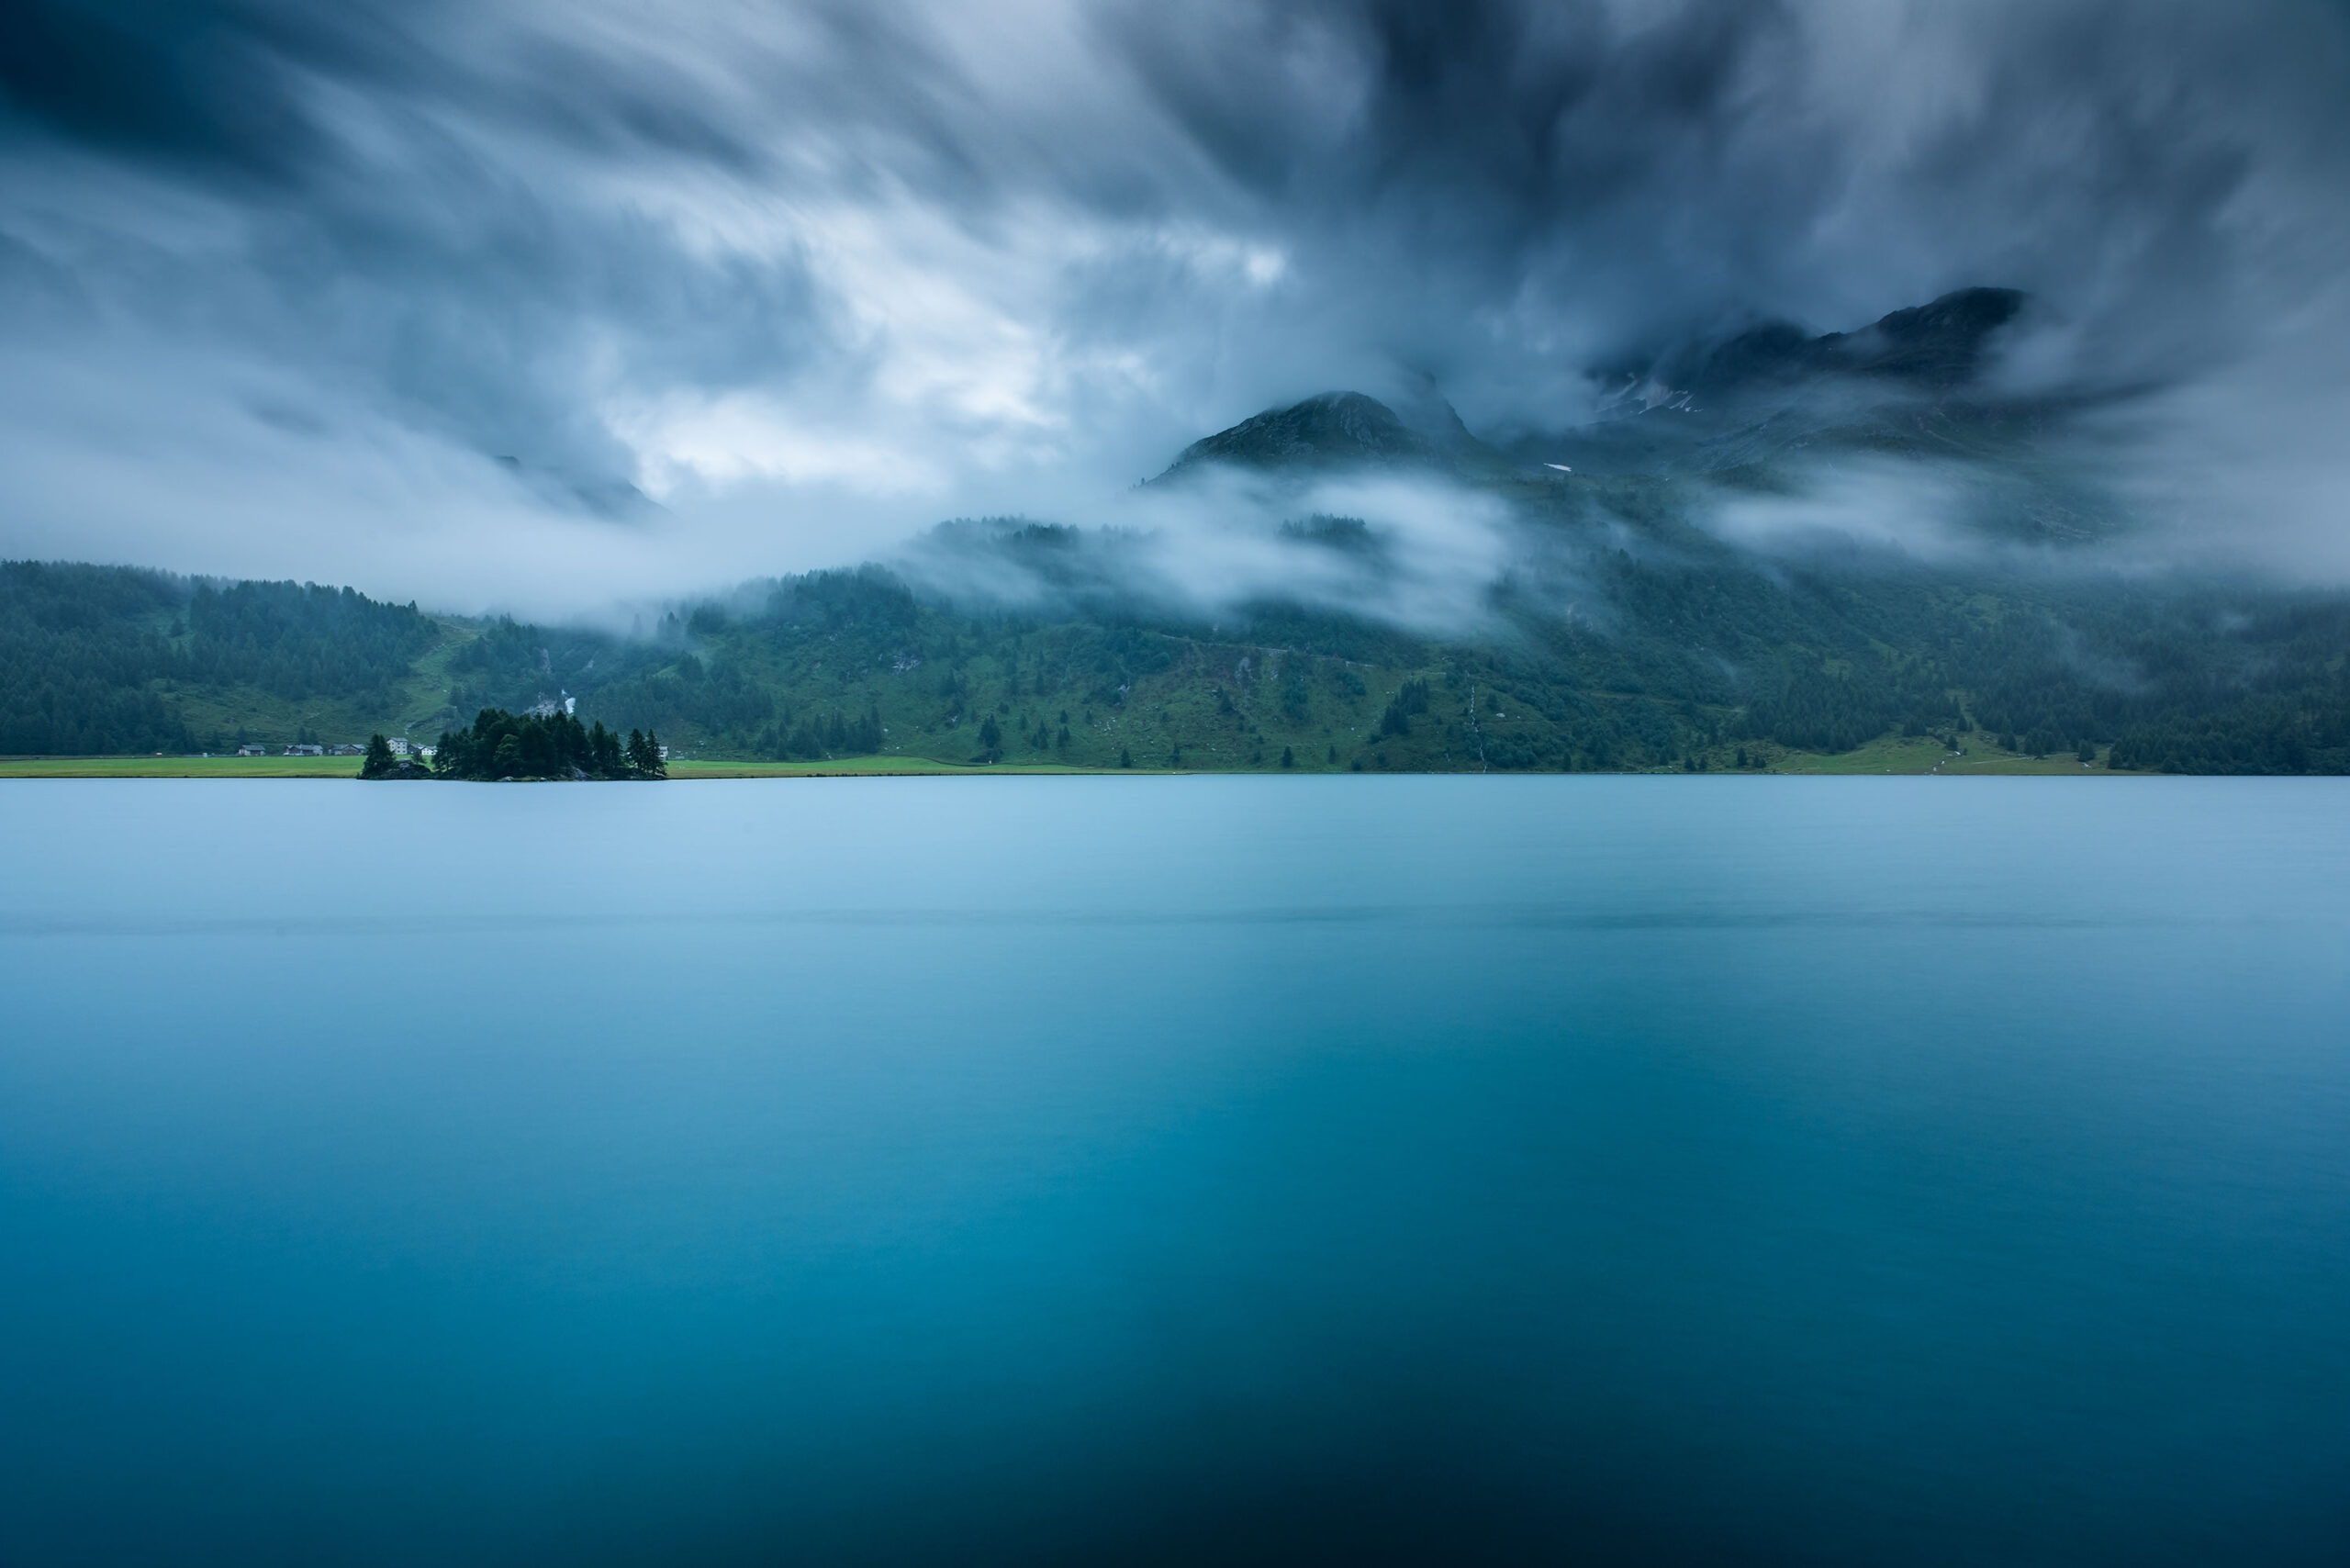 Landscape photography of the Lake Sils located in St. Moritz in Graubünden, Switzerland. Image by Jennifer Esseiva.